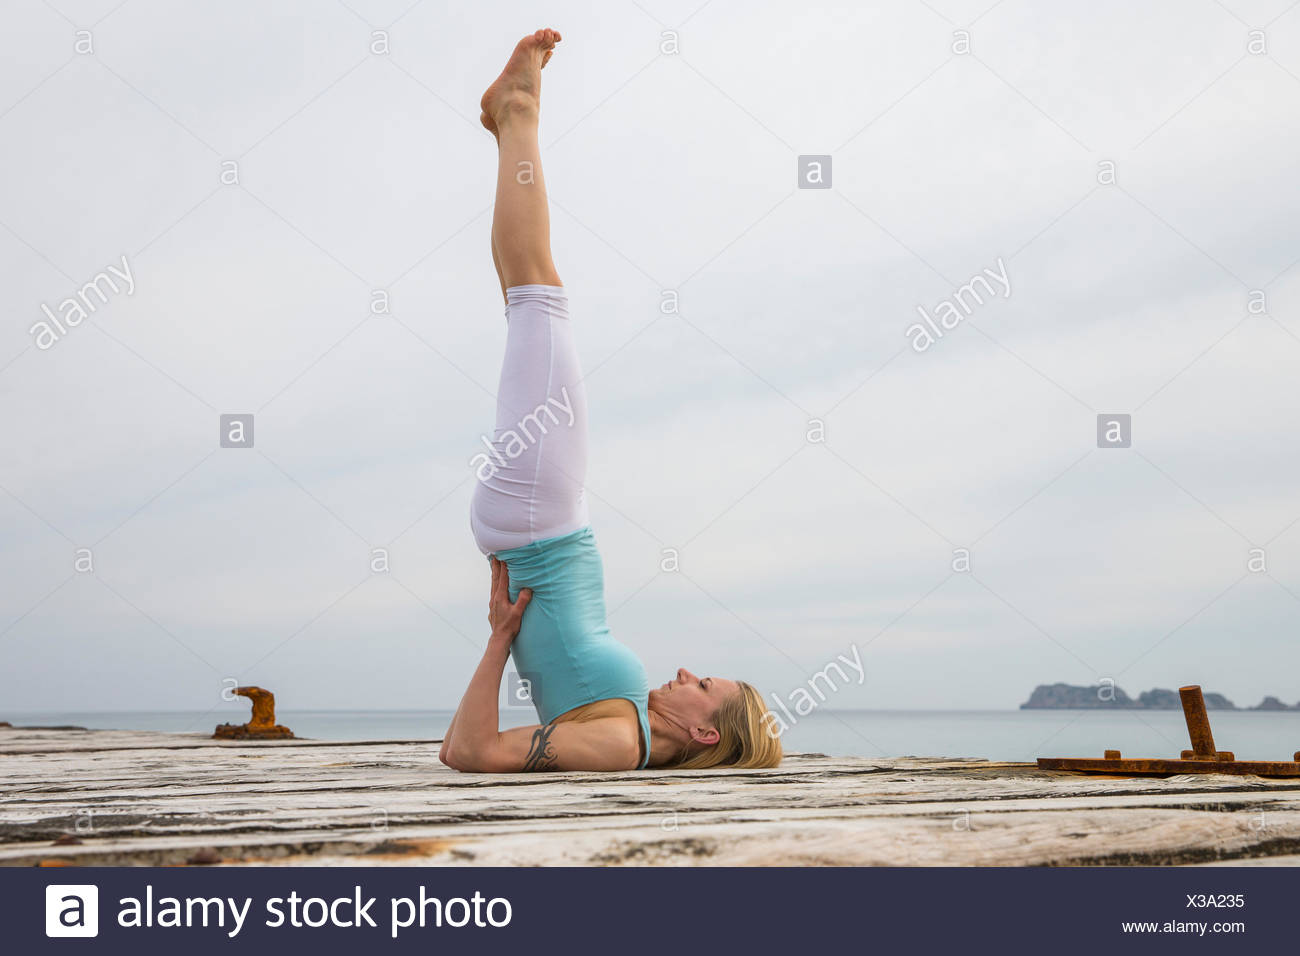 Mid adult woman avec jambes soulevées practicing yoga on wooden pier mer Photo Stock